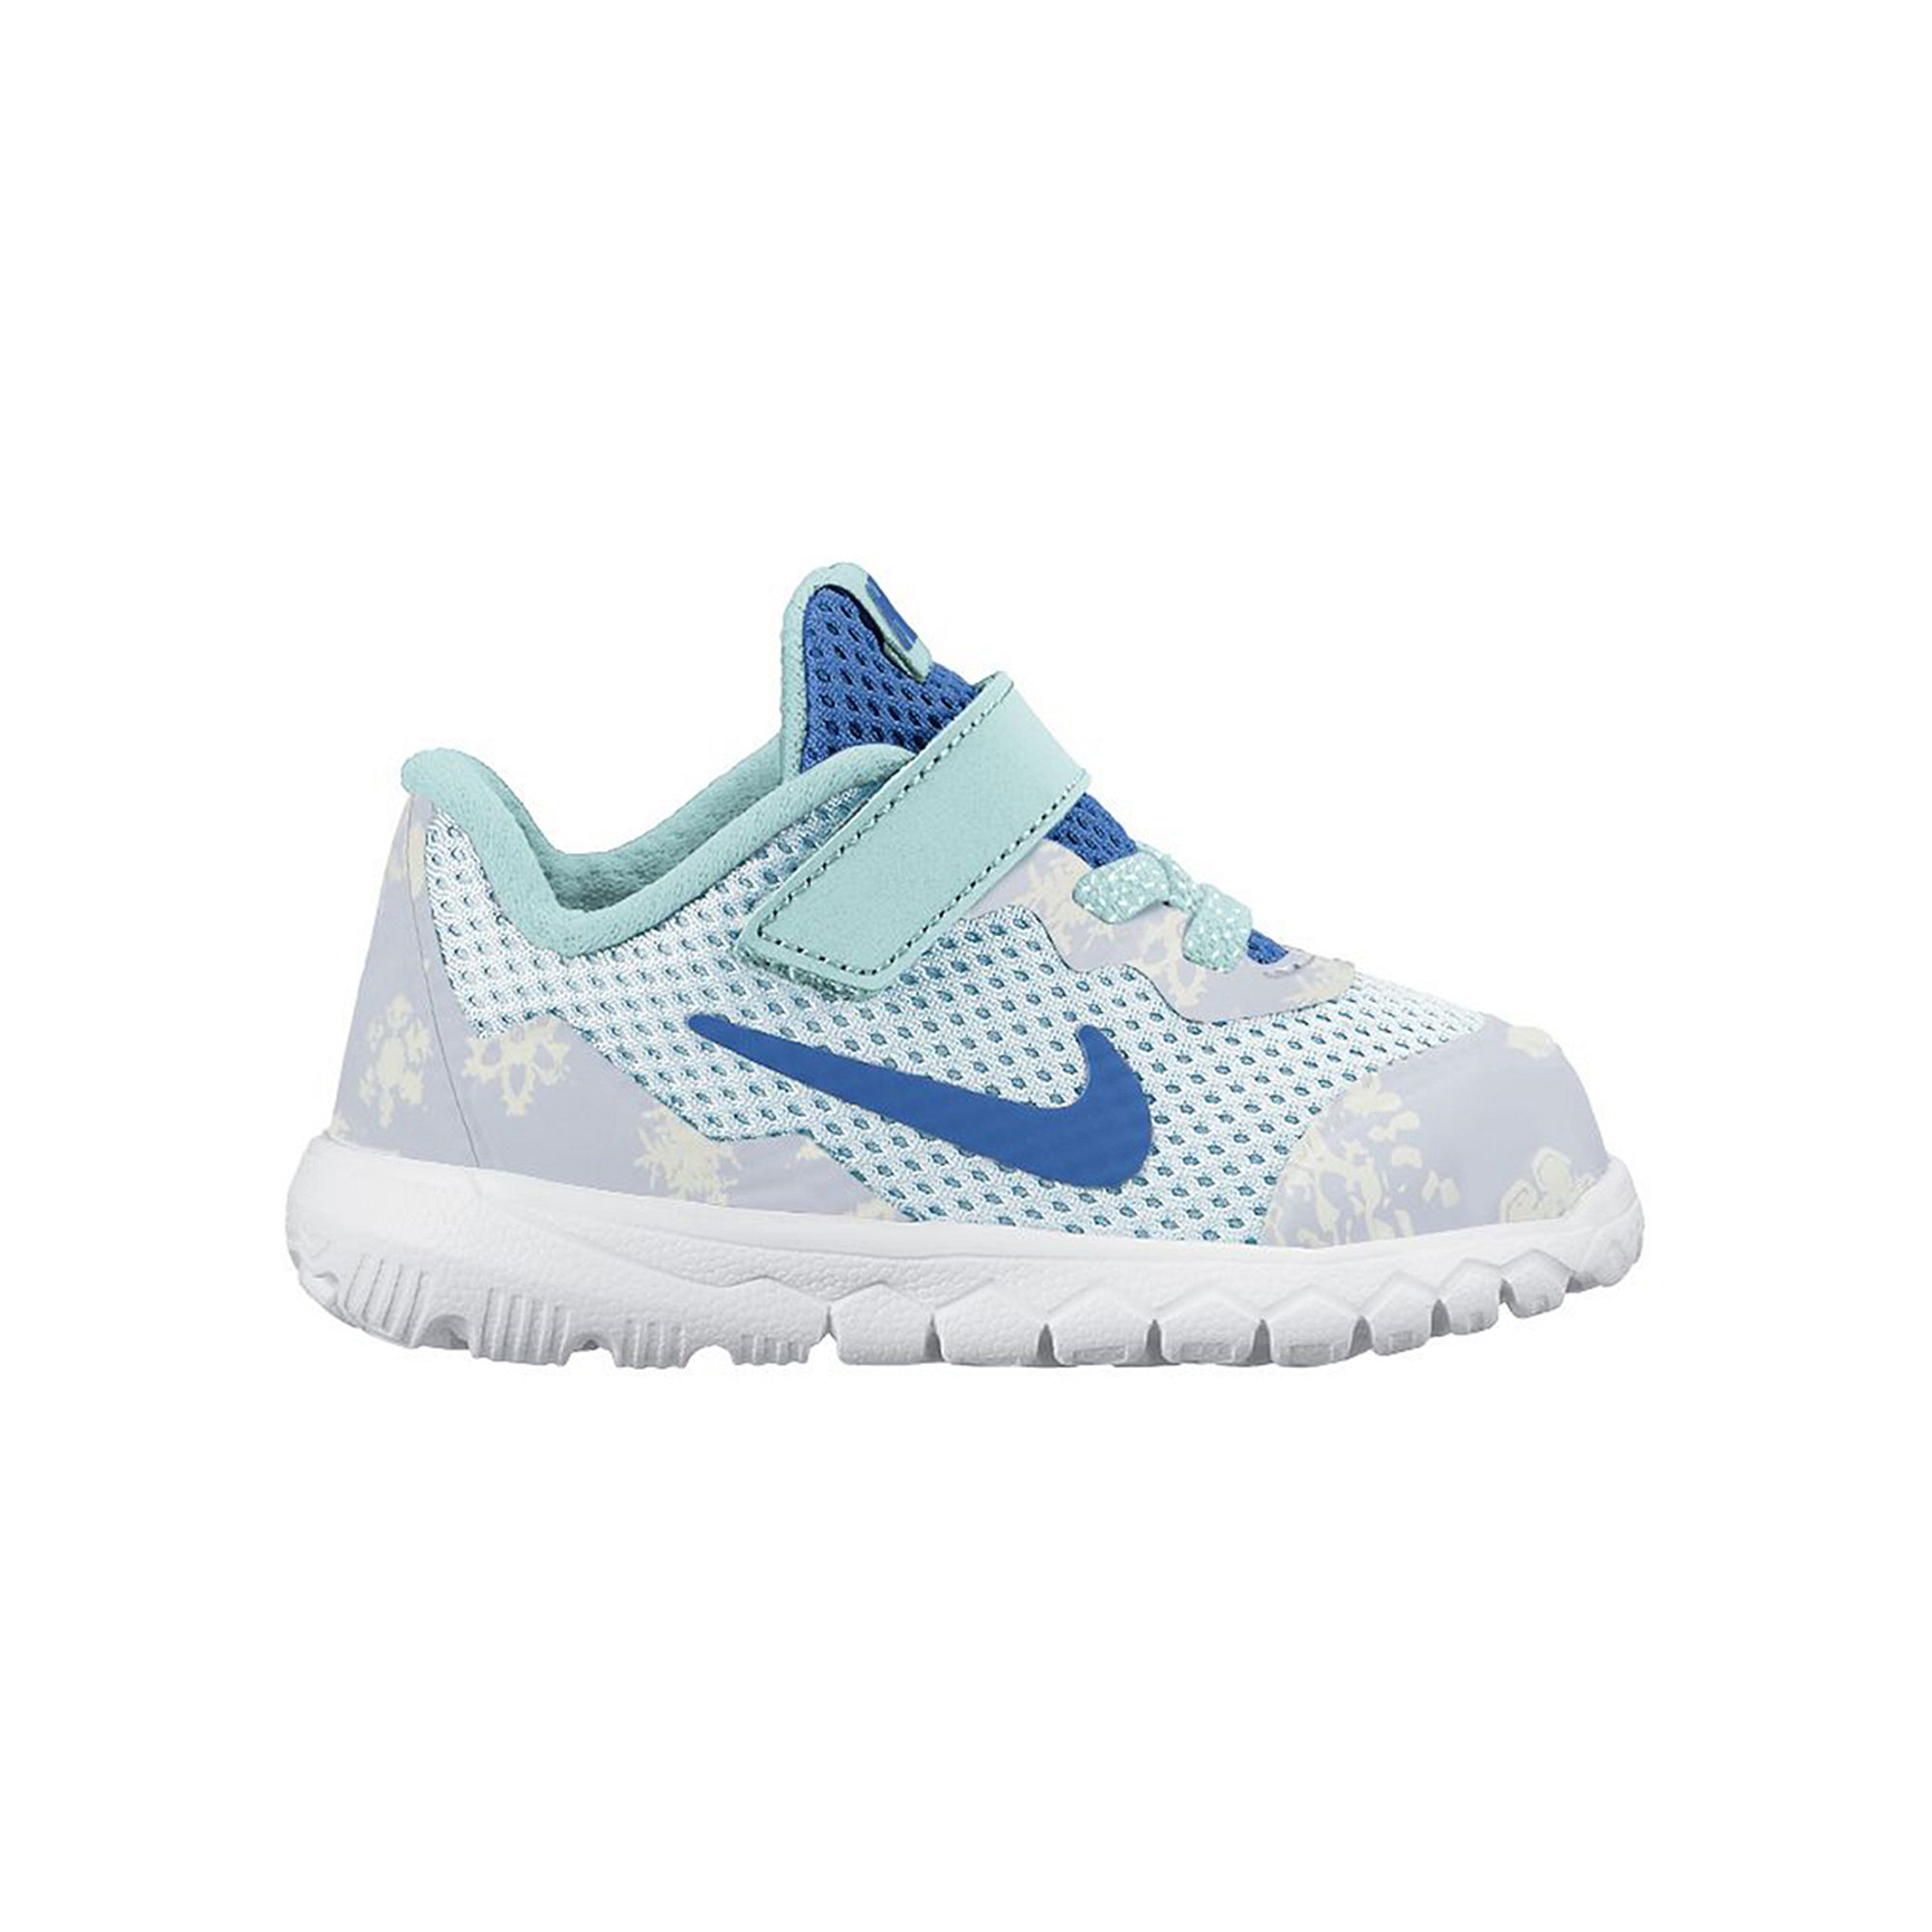 87837854f1c8 ... Girl s UPC 888410289167 product image for Nike Flex Experience 4 Girls Running  Shoes - Toddler